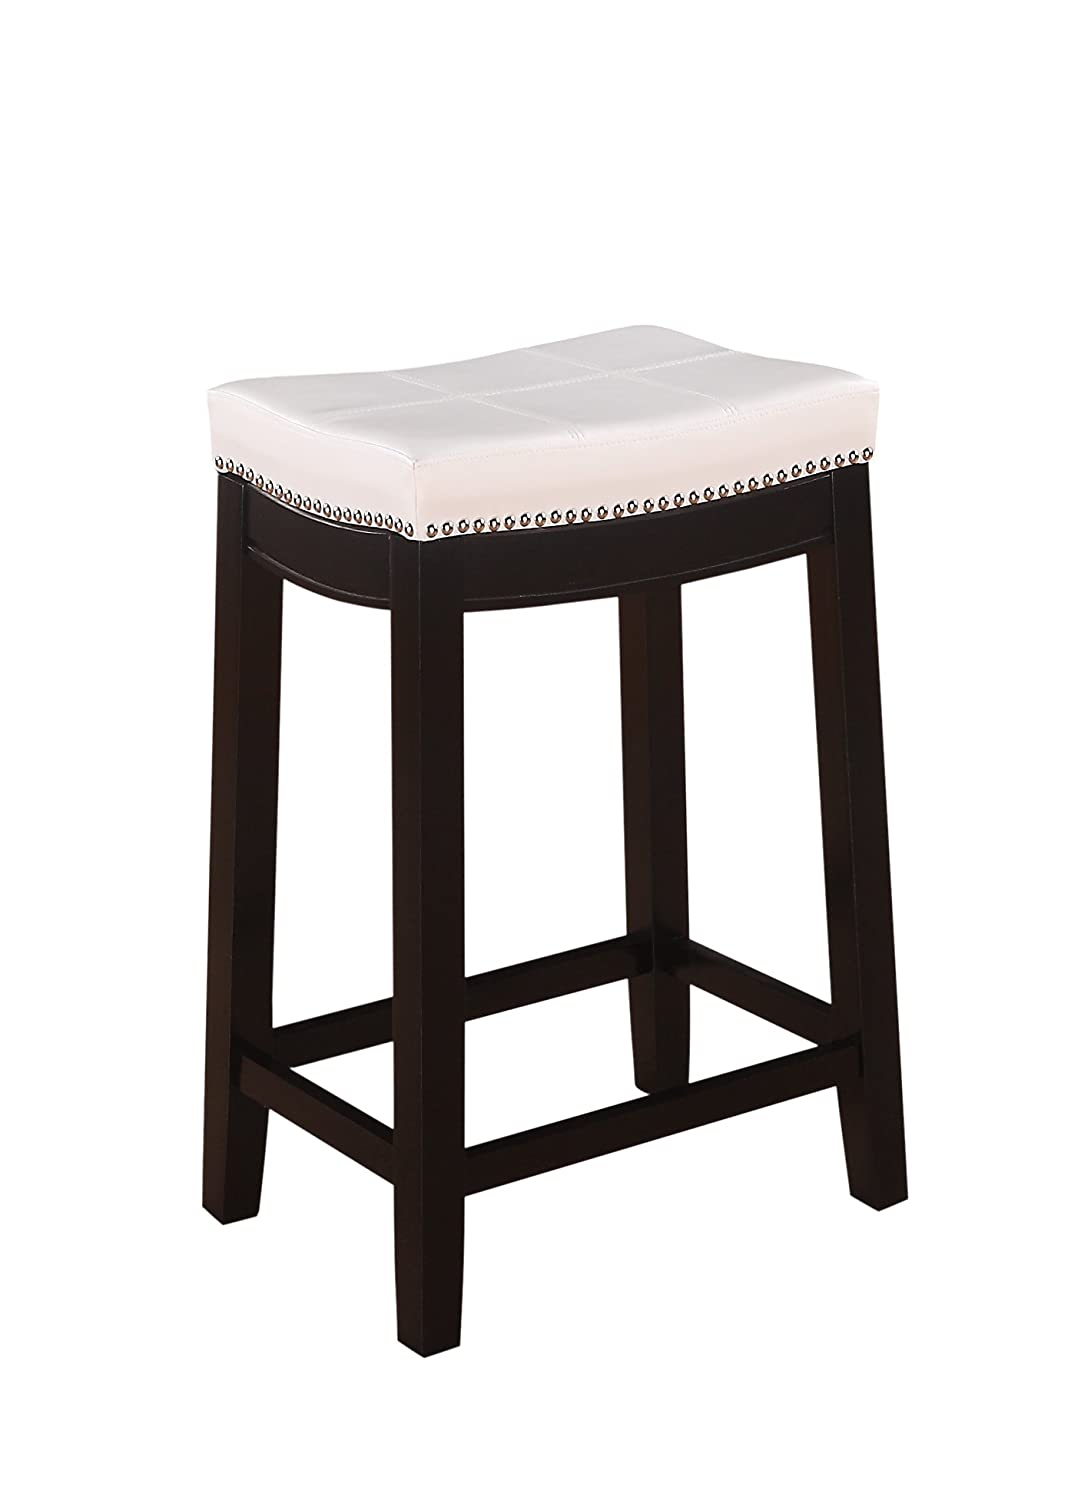 Amazon.com: Linon Claridge Patches Counter Stool, 26-Inch, White ...